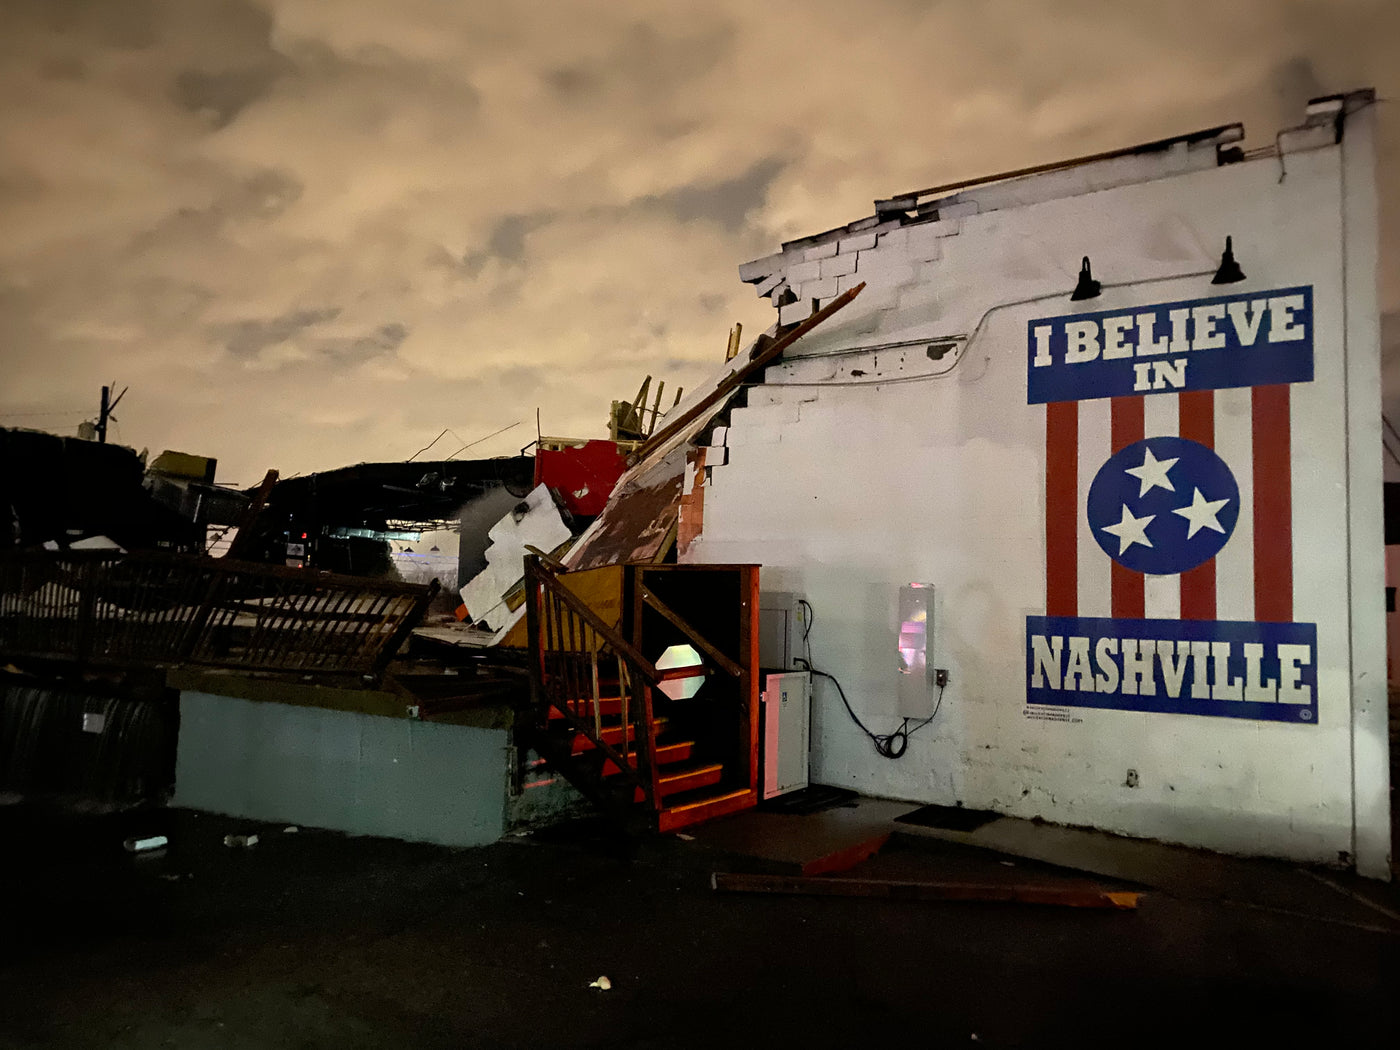 Nashville Tornado - Where to Find and Offer Help